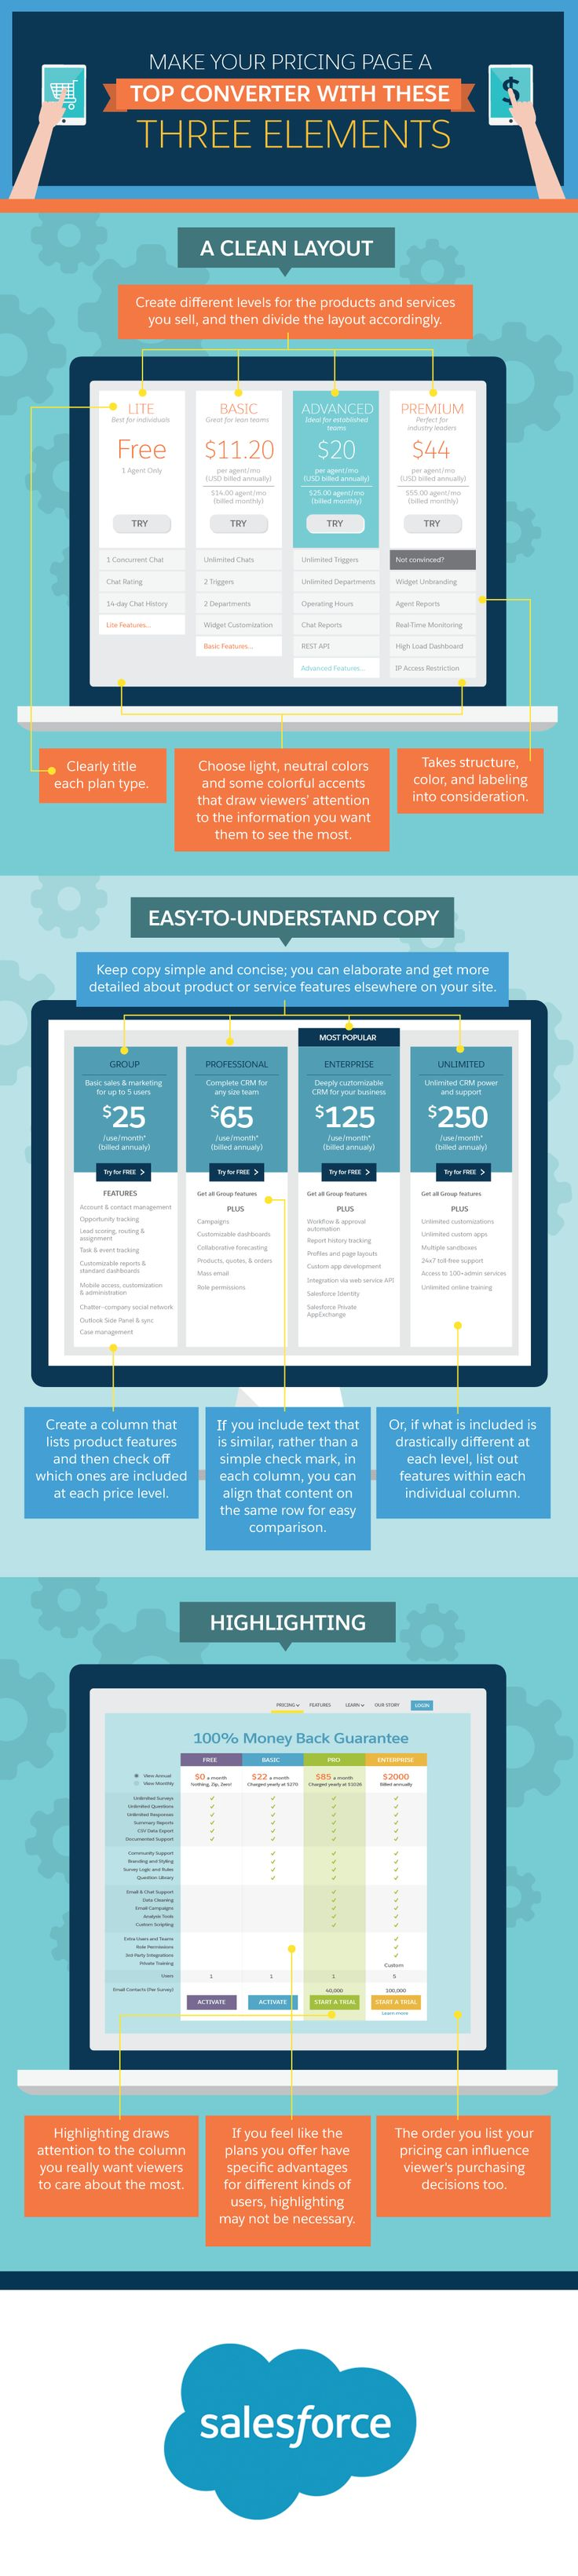 Make Your Pricing Page A Top Converter With These Three Elements #Infographic #Marketing